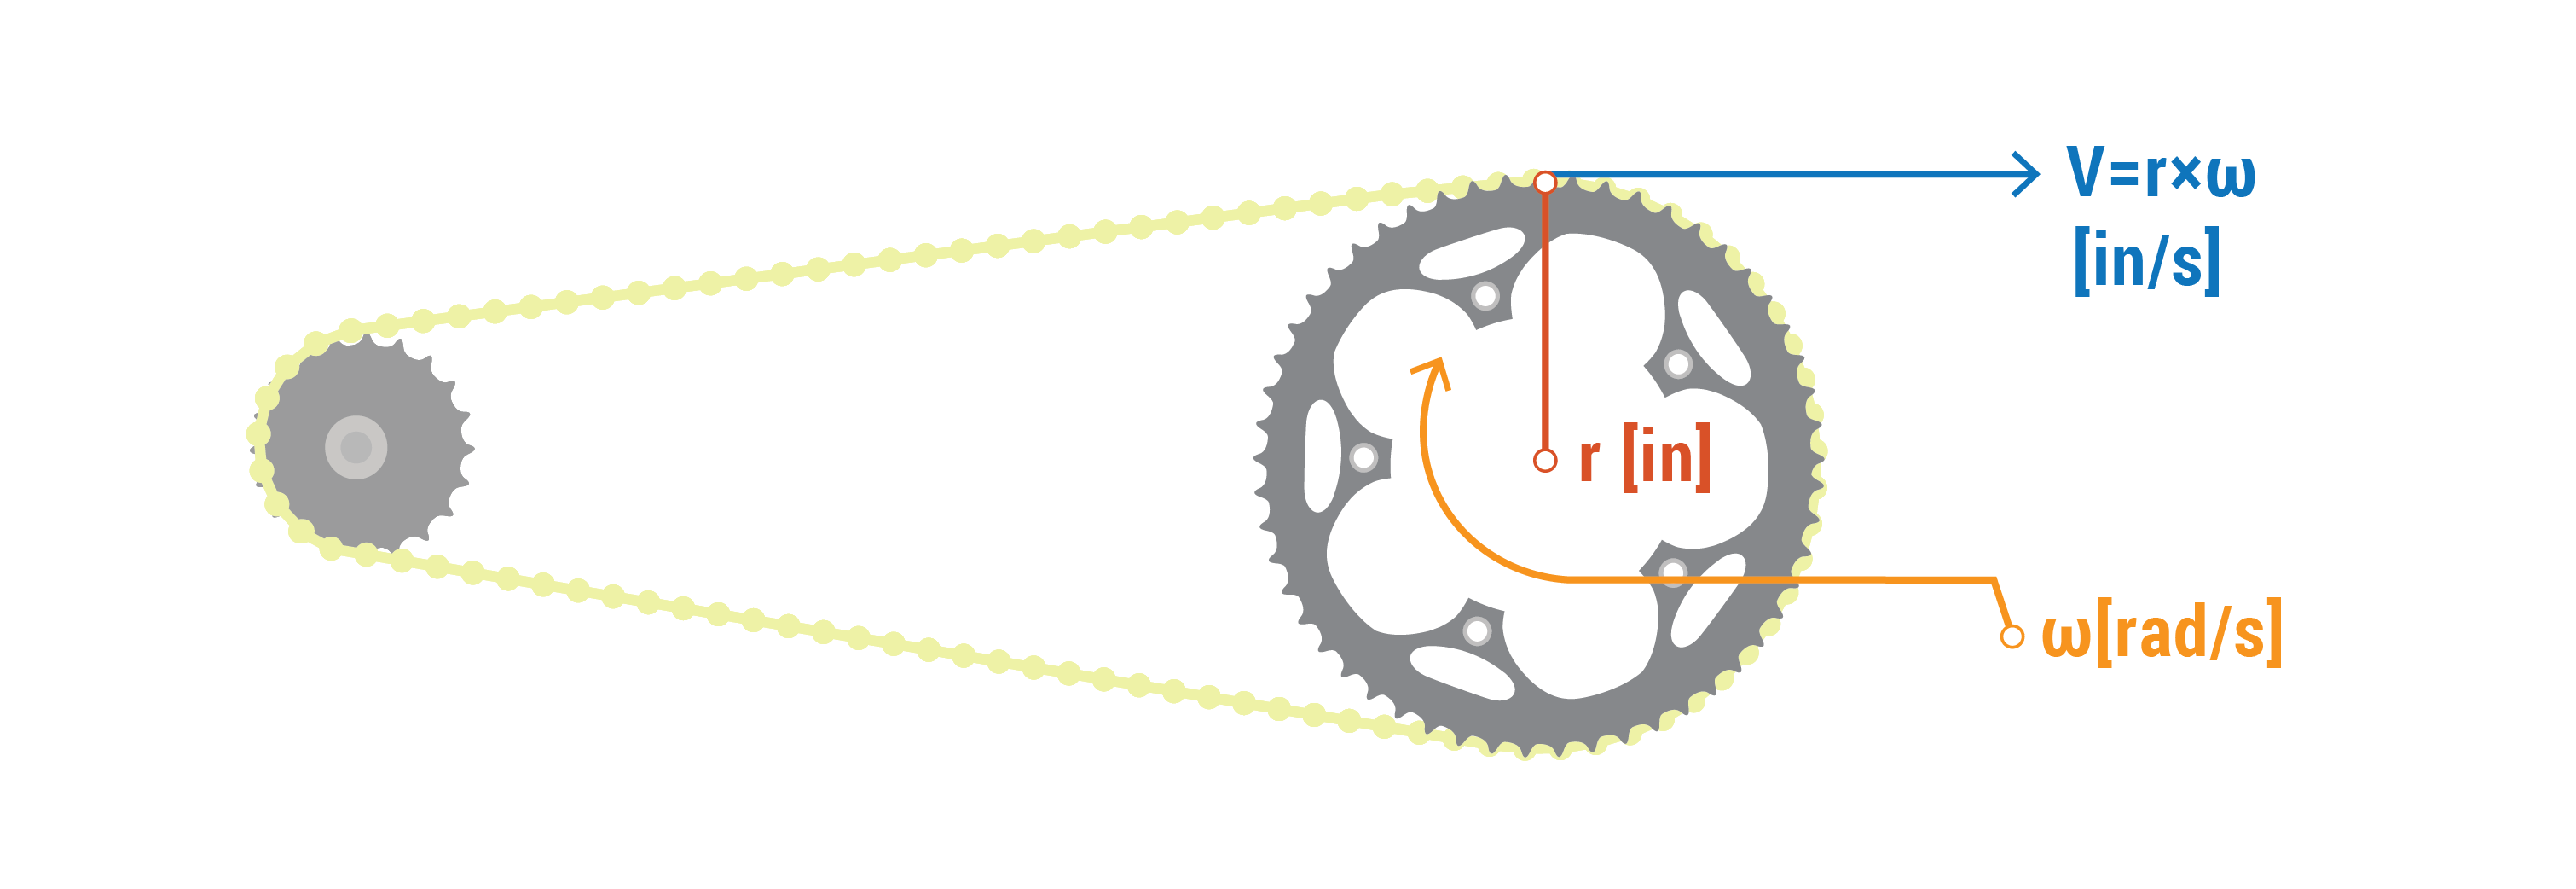 gear diagram1 bike gearing 101 understanding gearing, cassette, and chainring